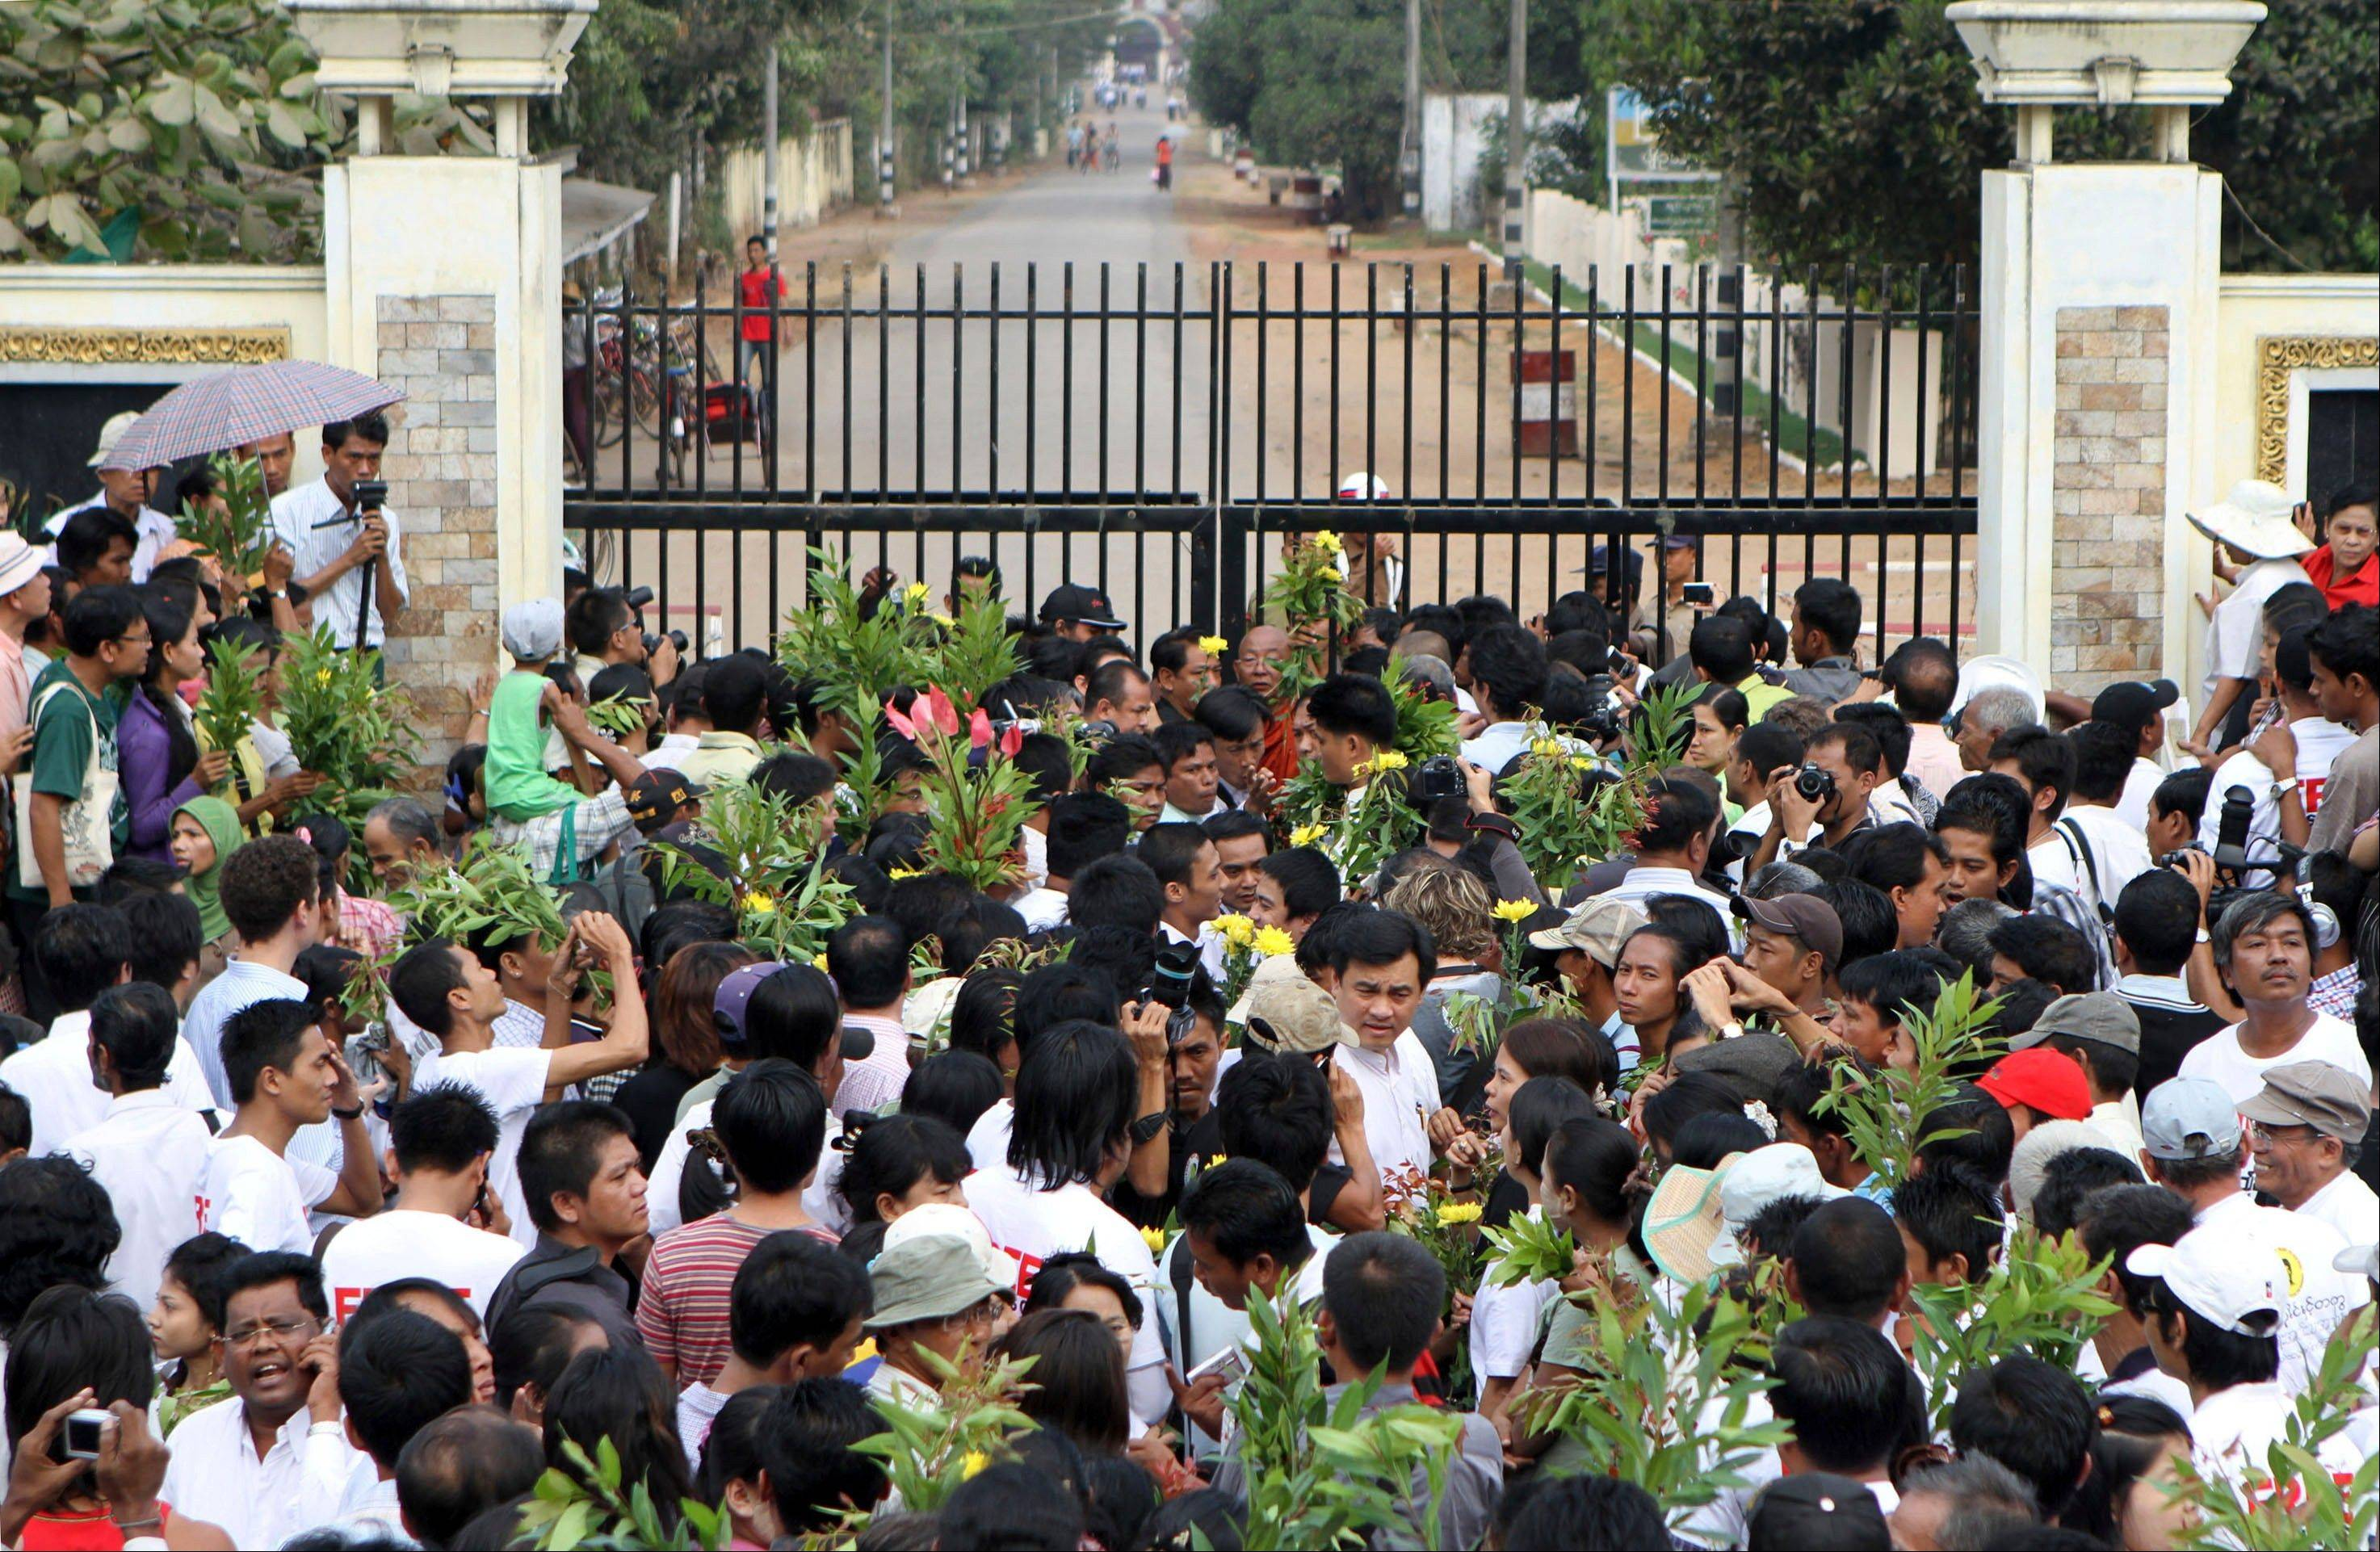 In this file photo, family members of Myanmar prisoners wait in front of Myanmar's notorious Insein prison in Yangon, Myanmar, as they hope their relatives and colleagues will be freed. Myanmar's government said Monday, Sept. 17, 2012 it has granted amnesties for 514 prisoners, including some foreigners, on humanitarian grounds.